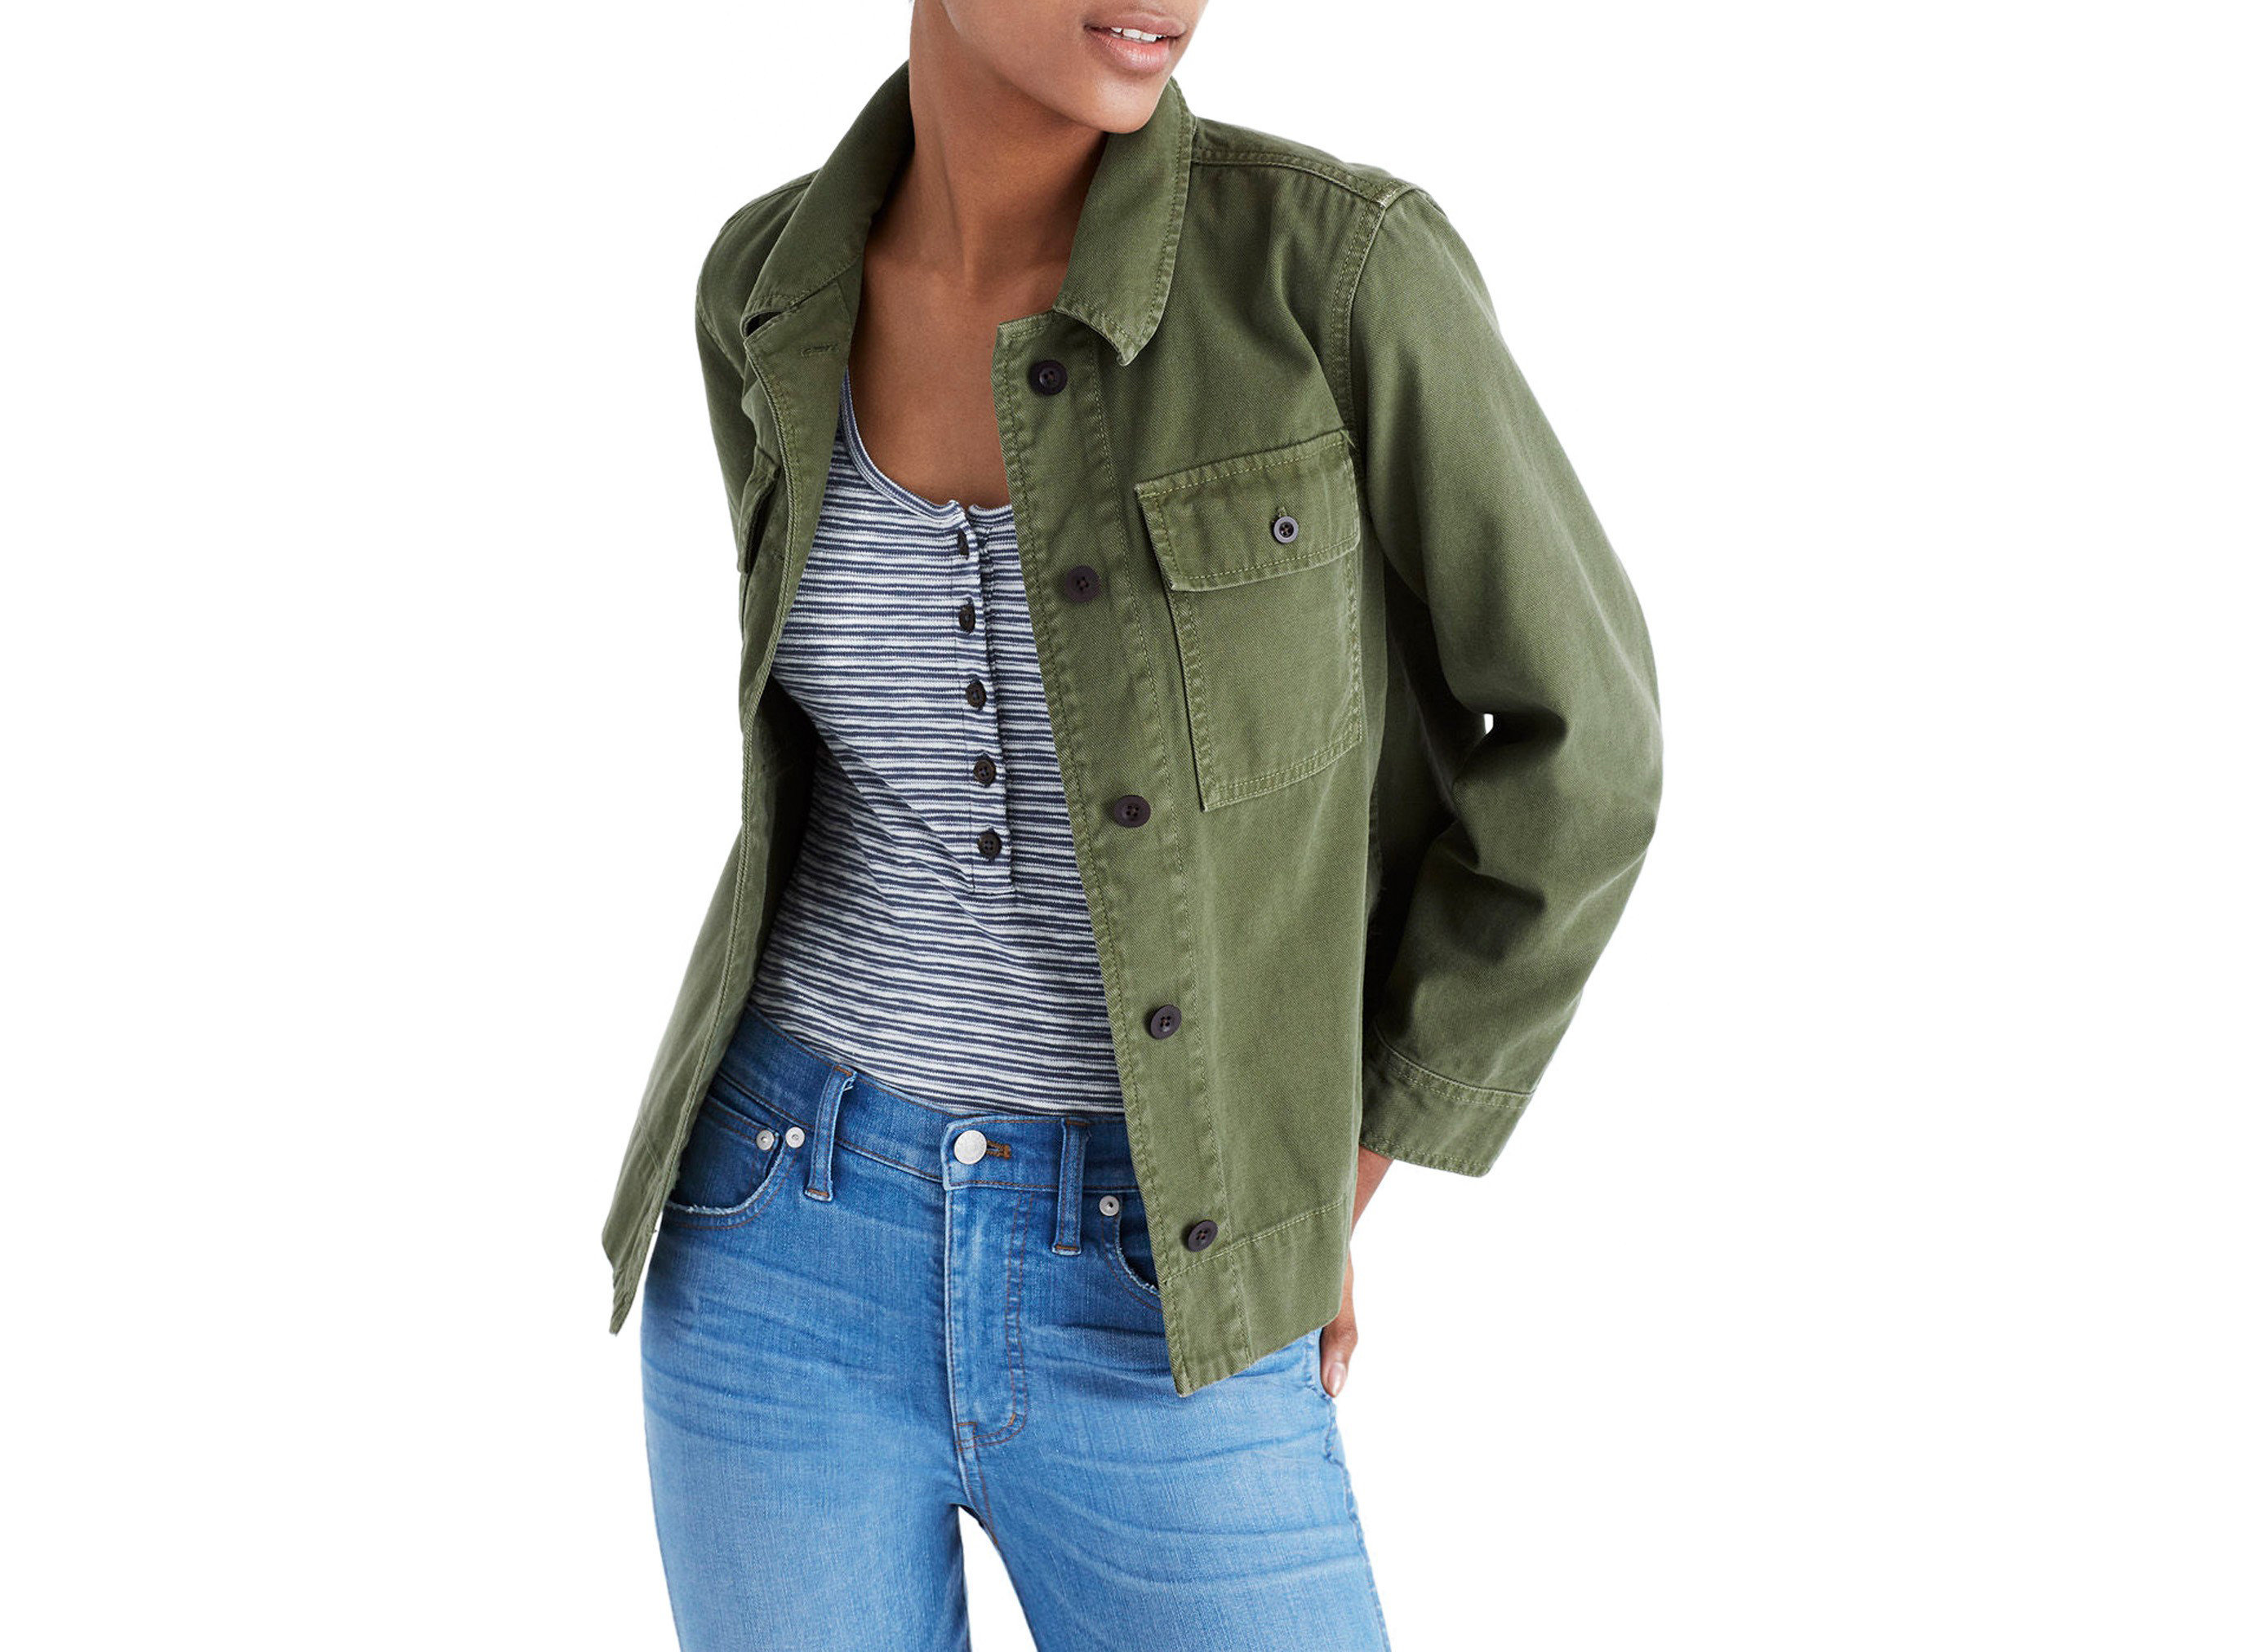 Style + Design person jacket wearing smiling posing green sleeve product jeans